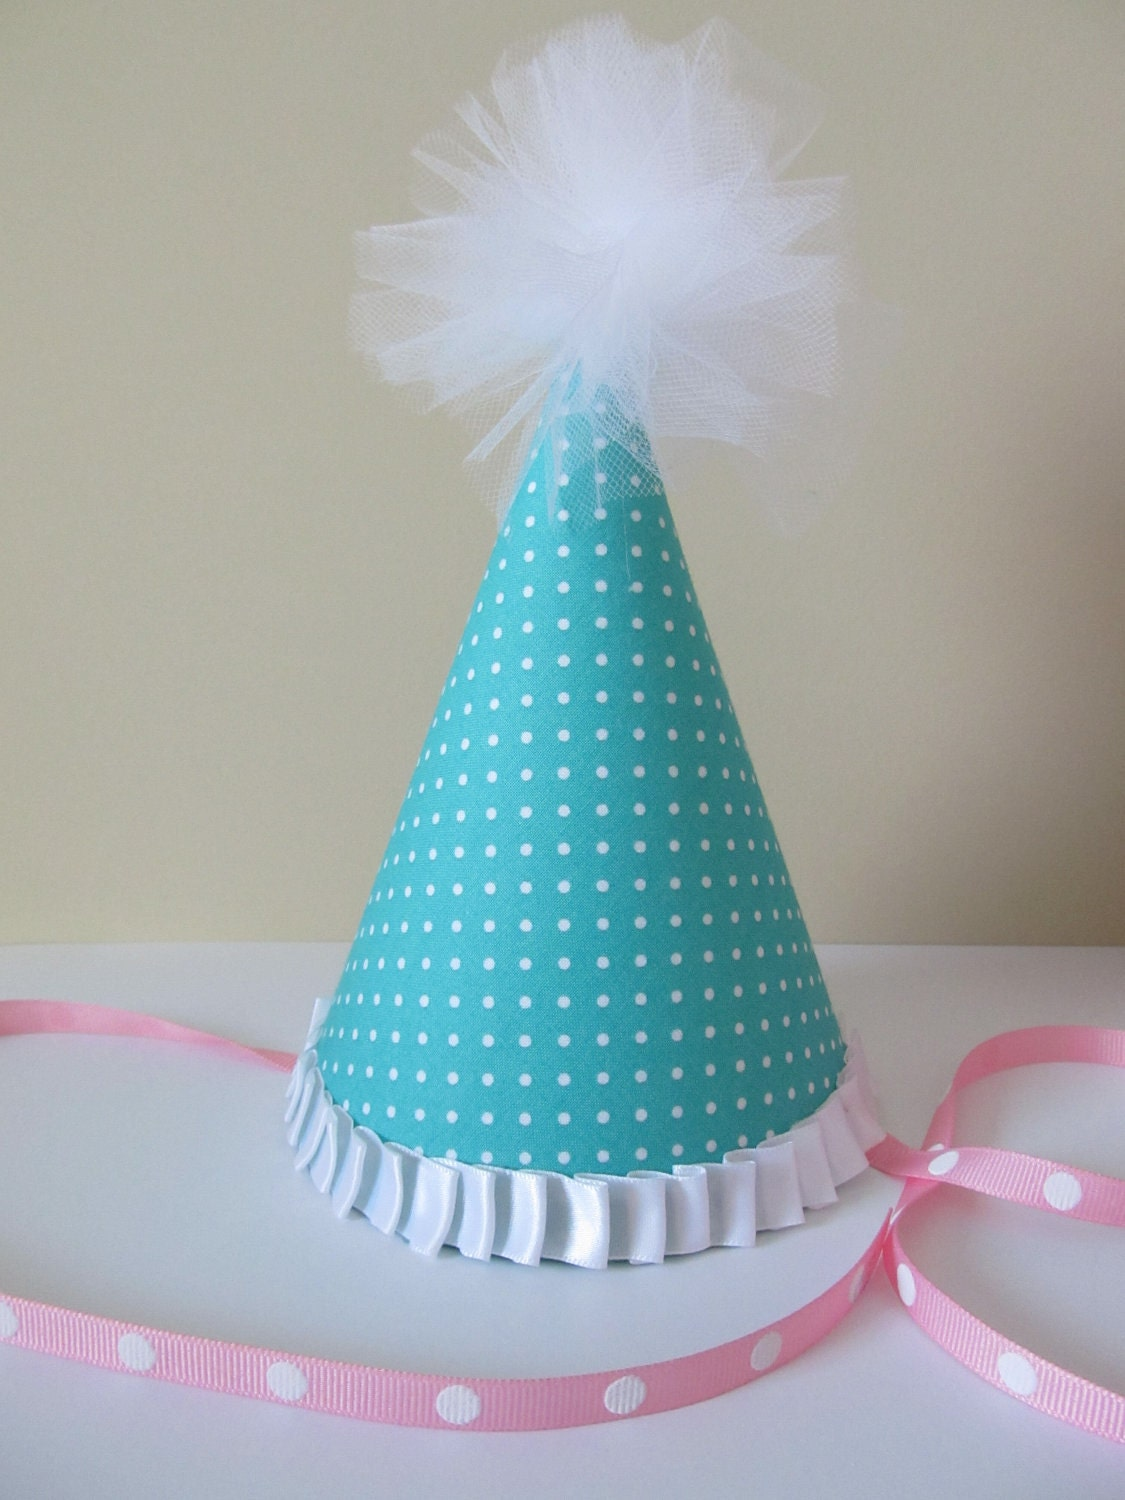 Boutique Fabric Party Hats- Perfect as a First Birthday Party Hat or Fun Party Favors